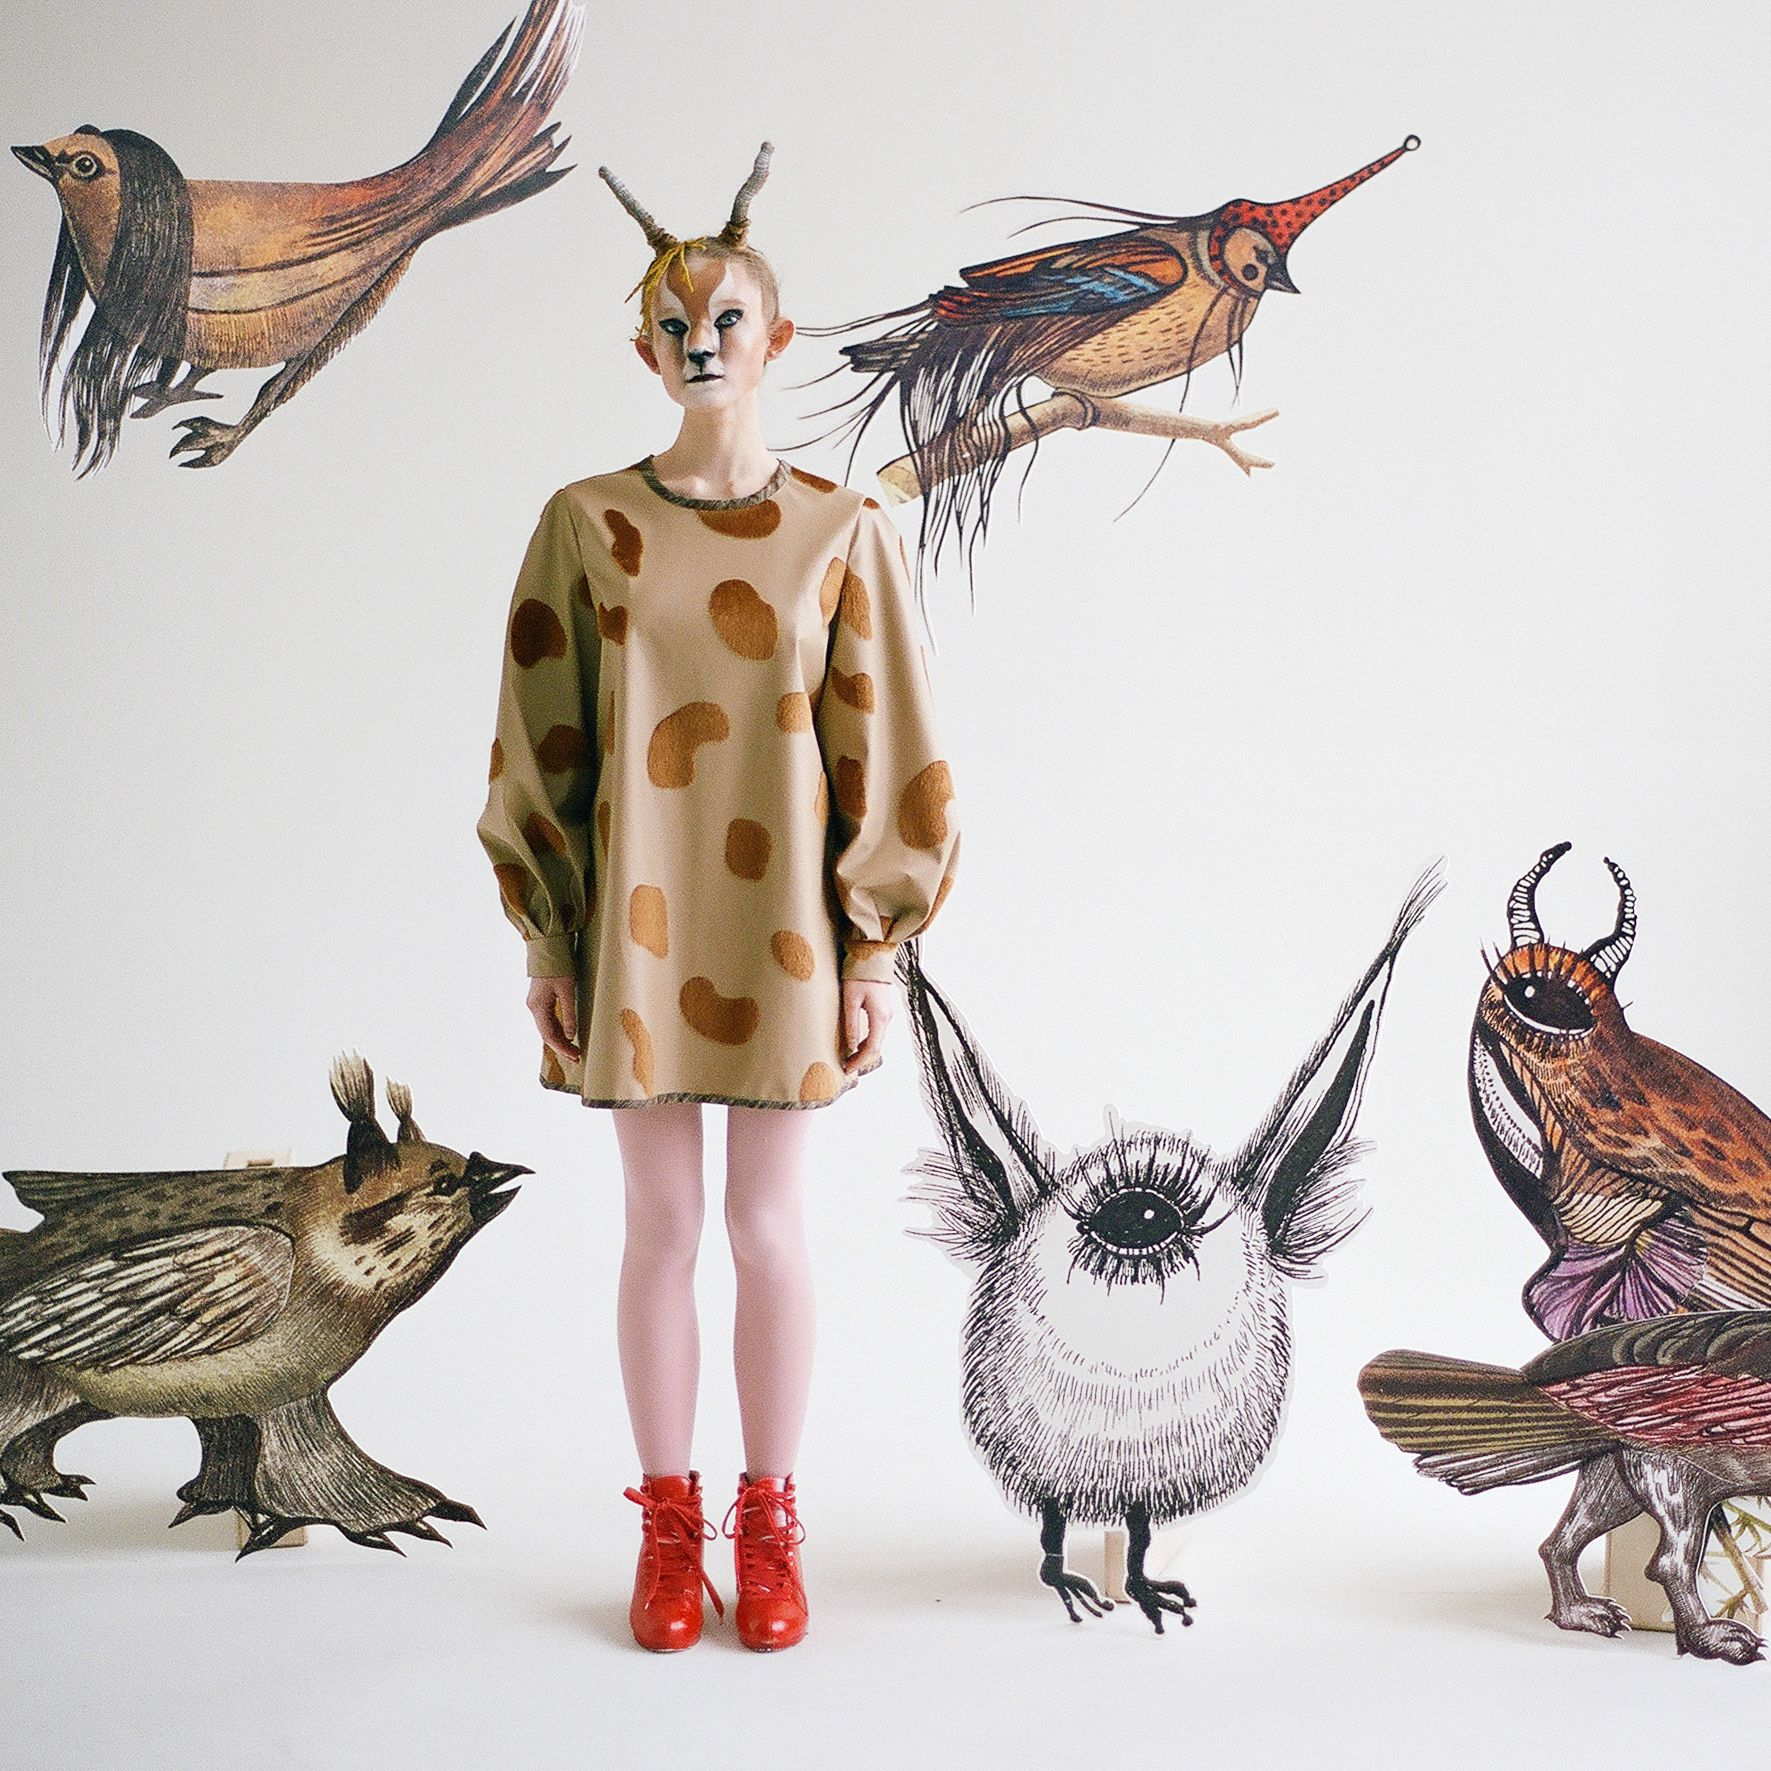 """Monstrology"""" is a new story// fairy tale by Lesia Paramonova, Moscow - based fashion and graphic designer. This is a story about the magical transformations she created the six birds-monsters and turned them into embroidery on clothes"""